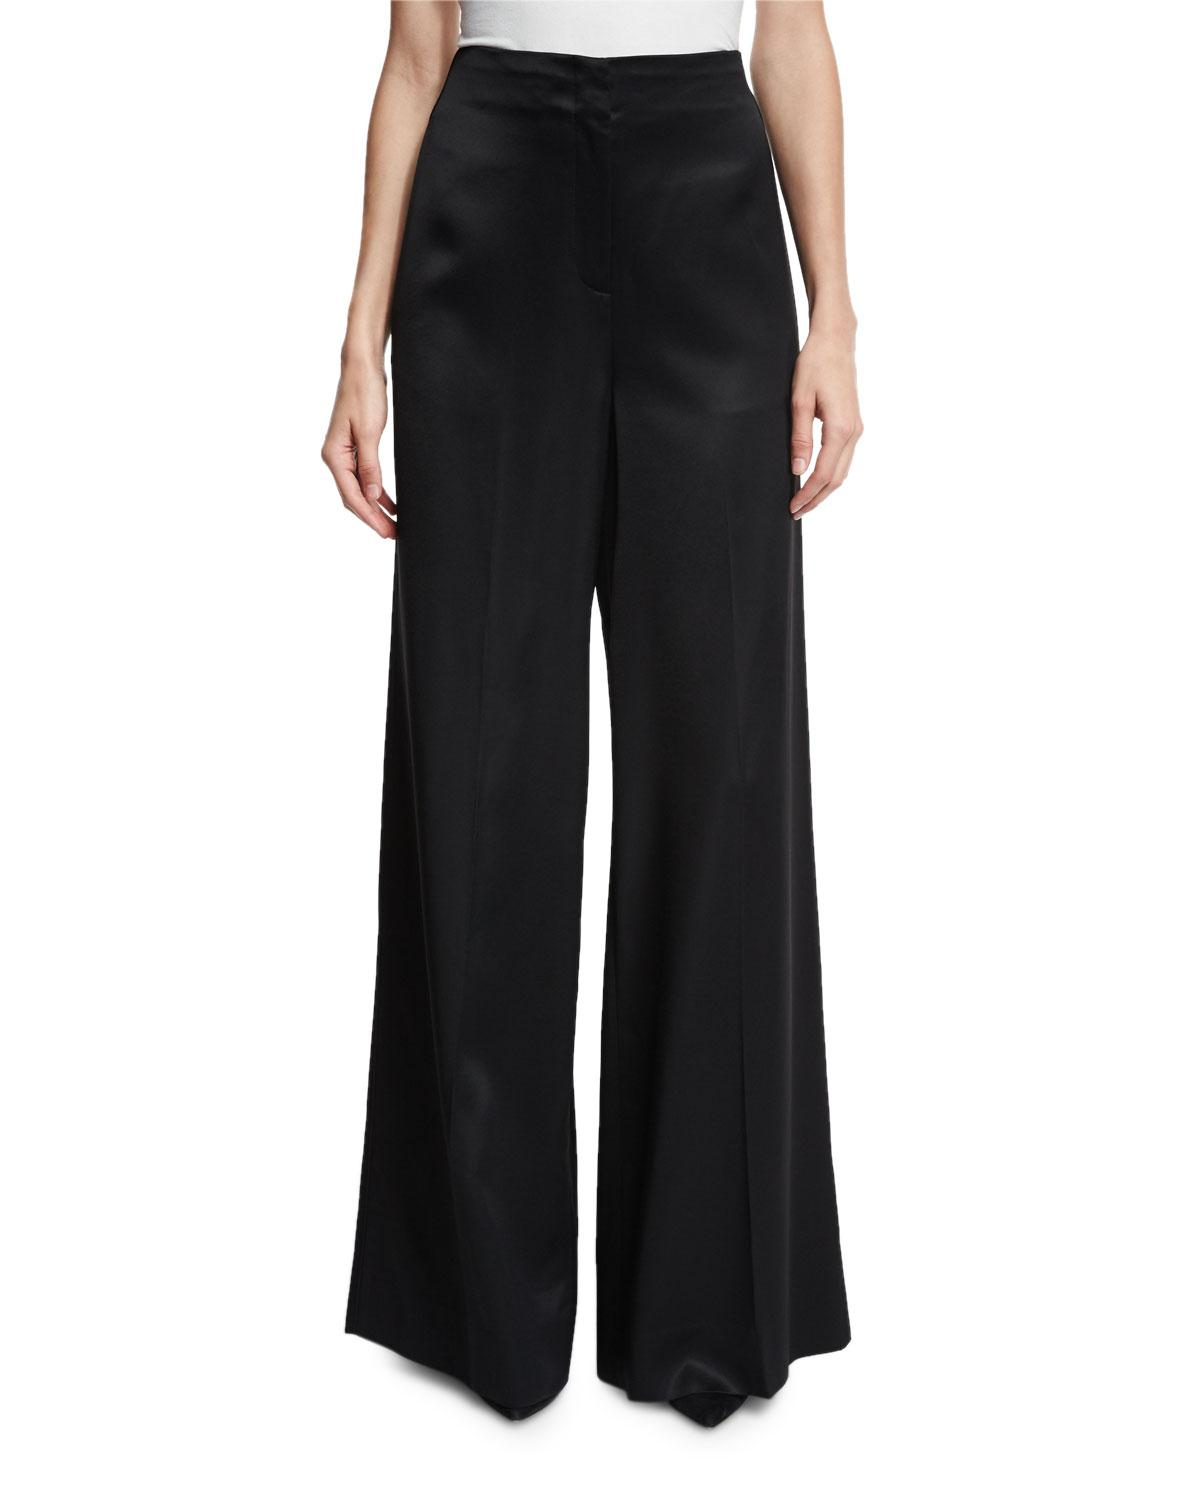 Find wide leg evening pants at ShopStyle. Shop the latest collection of wide leg evening pants from the most popular stores - all in one place. THE ICONIC Seamless Stretch Wide Leg Pants Black $ Get a Sale Alert at Shopbop Vince Wide Leg Pull On Pants $ Get a Sale Alert.